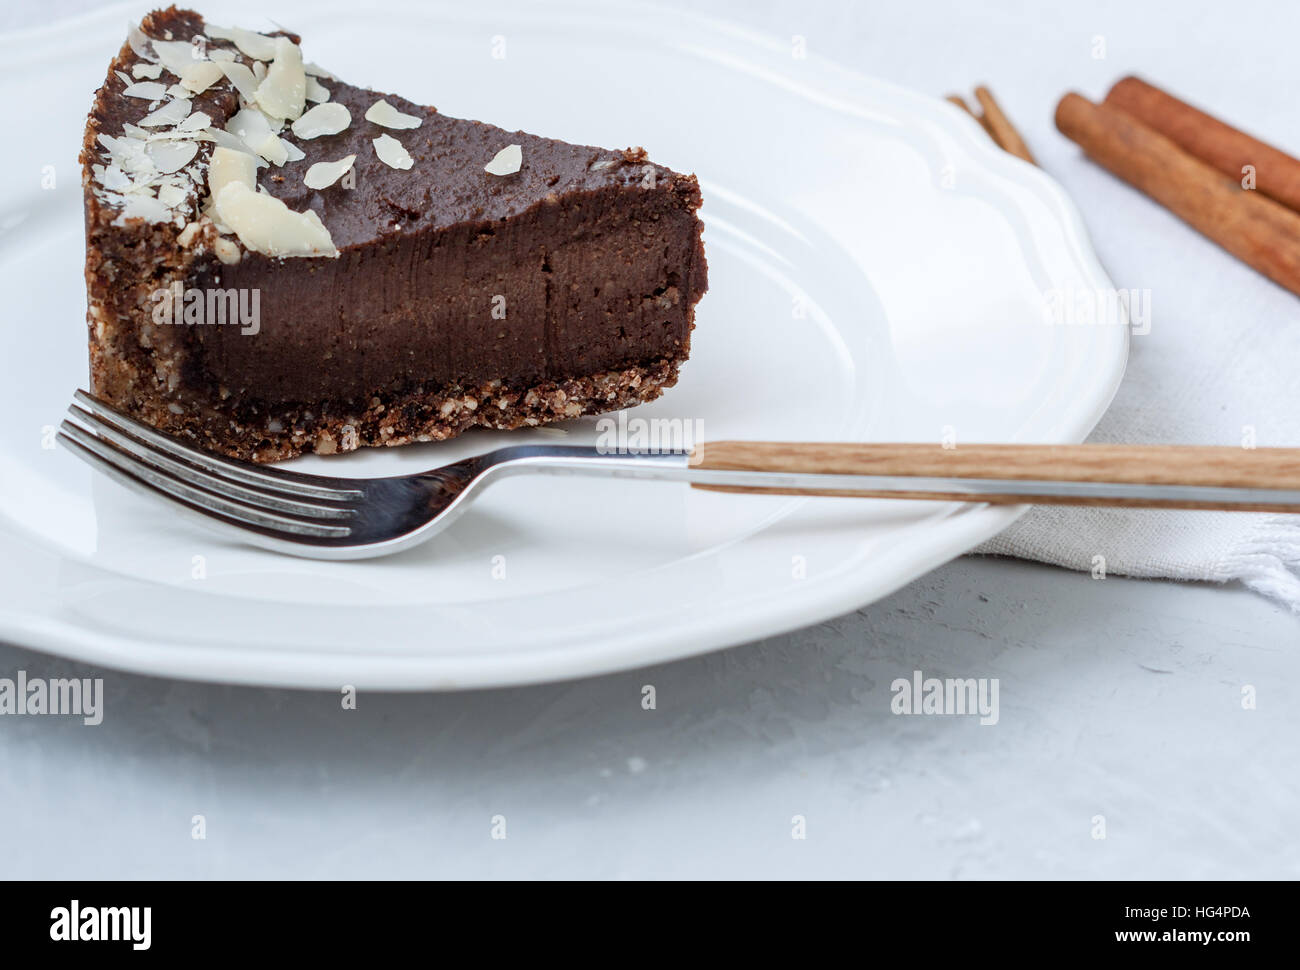 Chocolate raw vegan cake with nuts, figs and carob. Love for a healthy raw food concept. - Stock Image